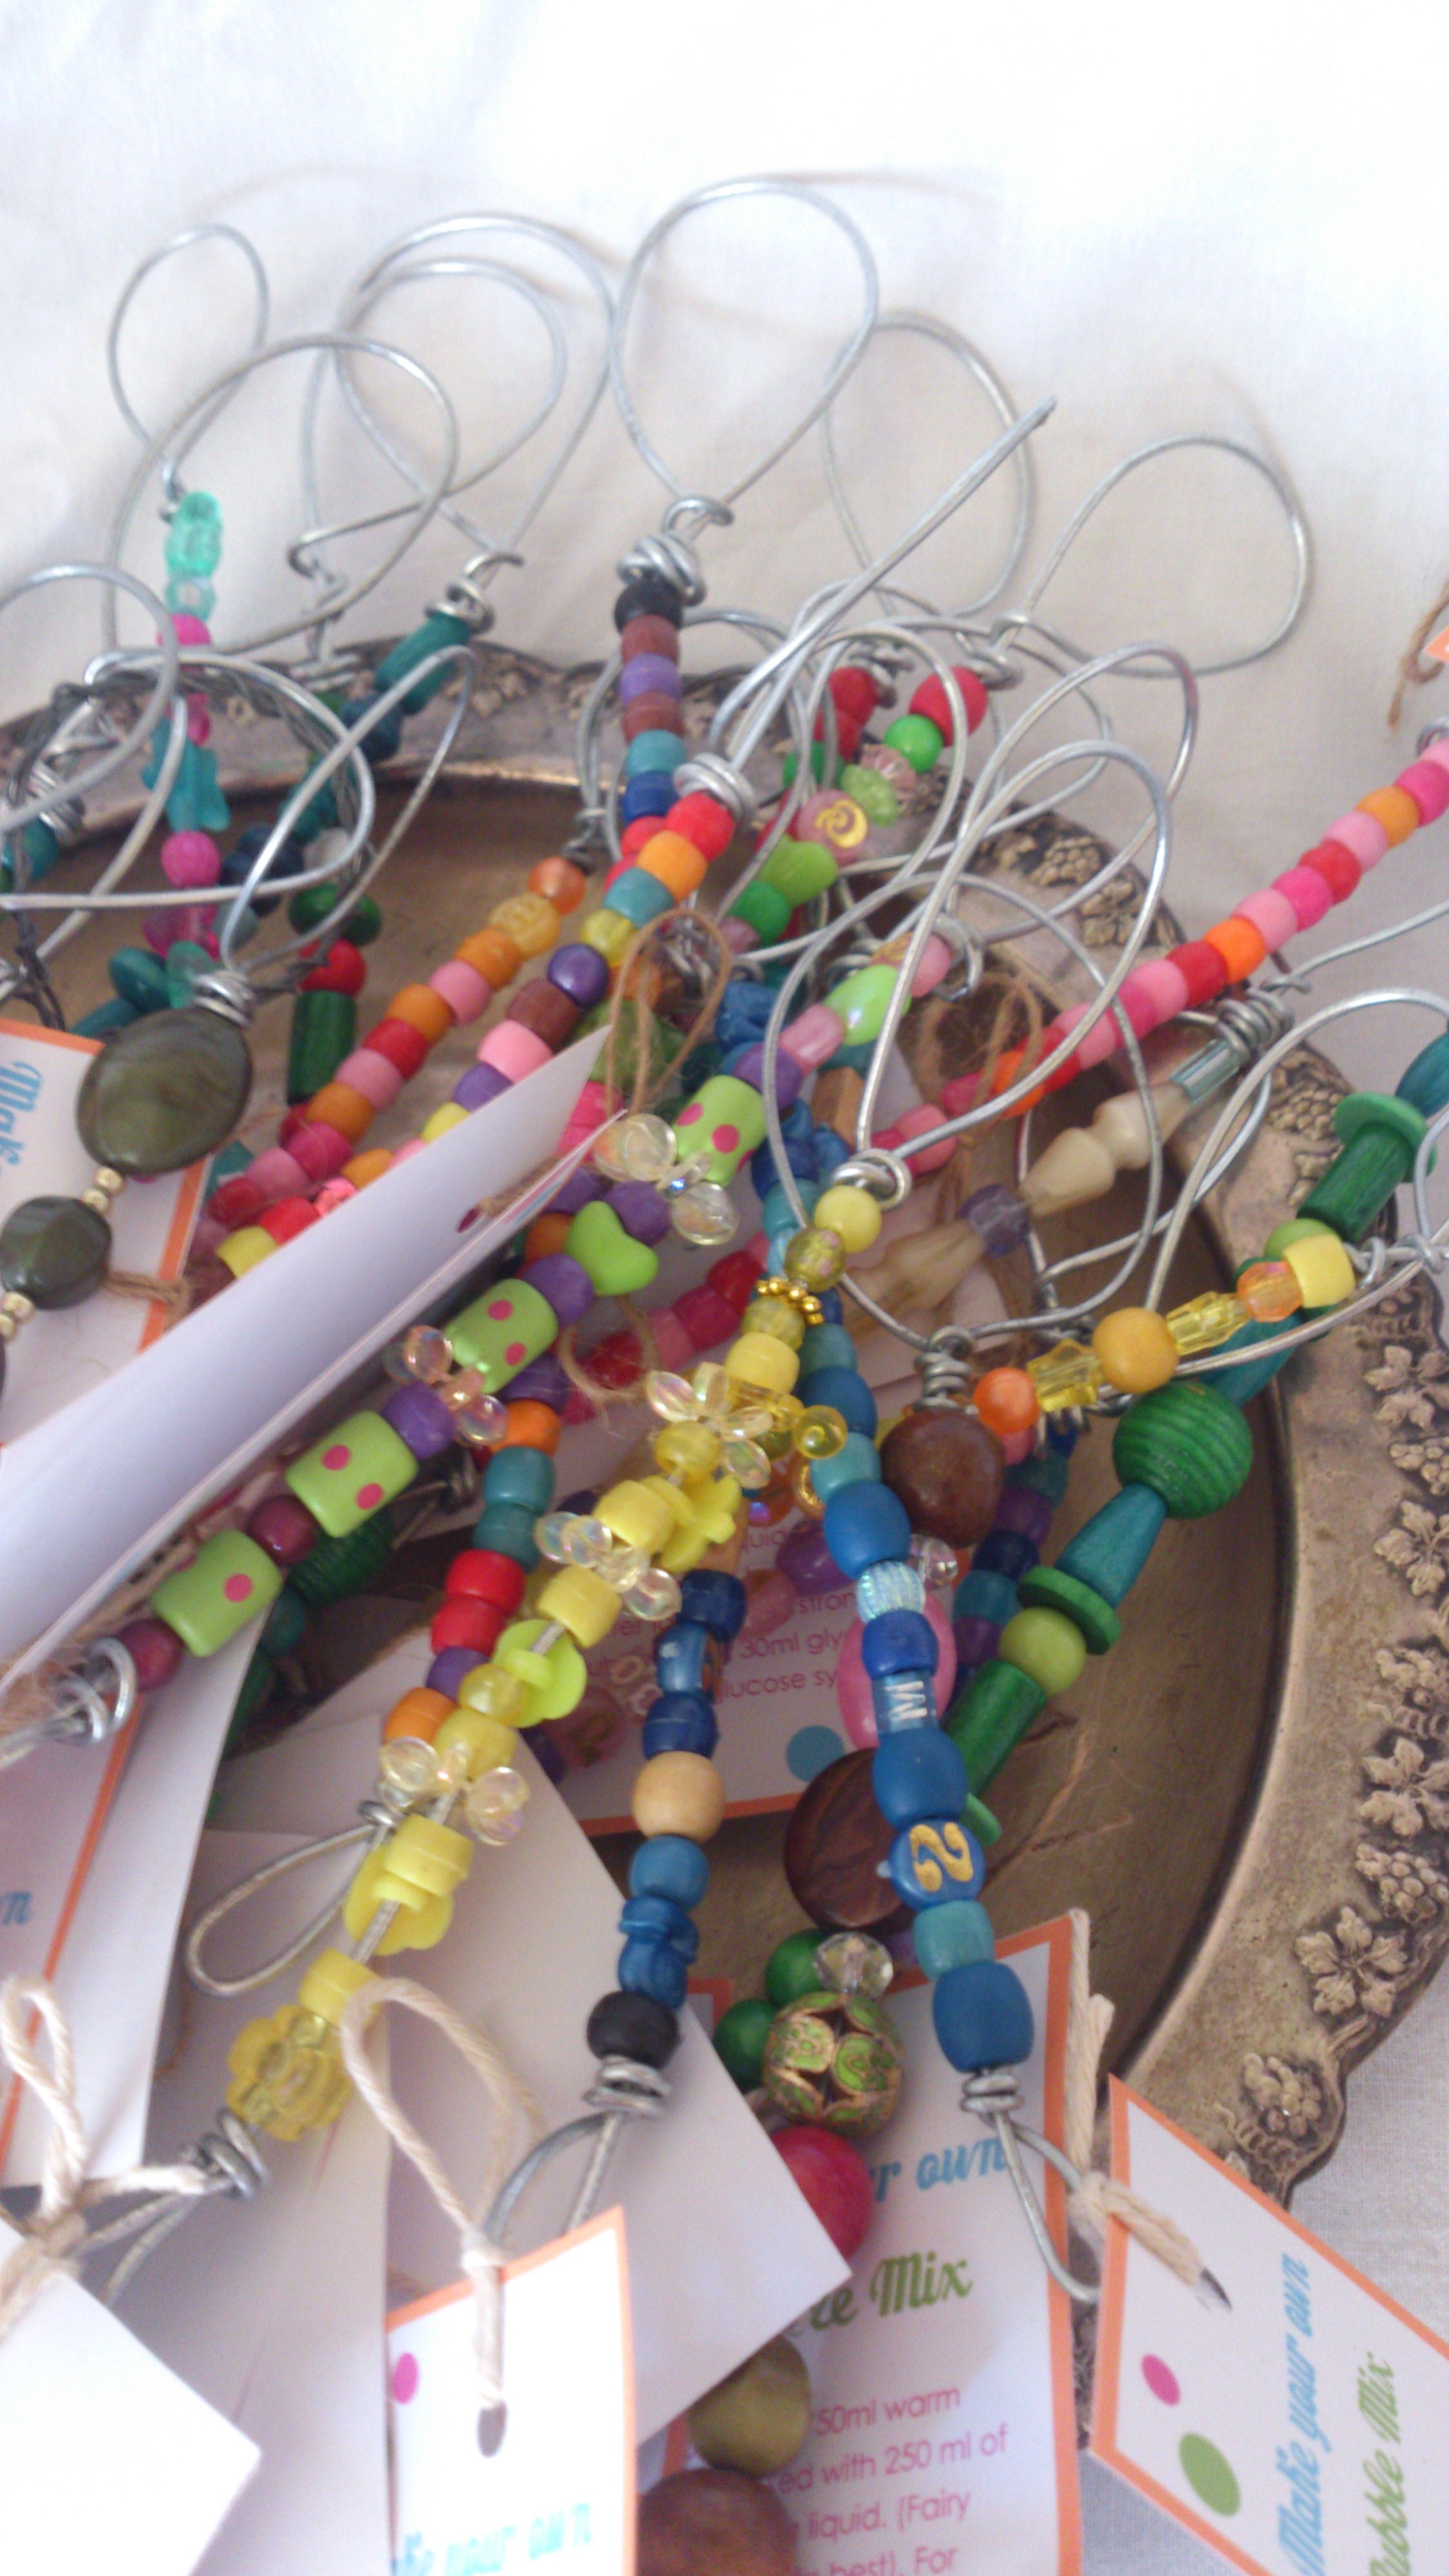 These are beaded bubble wands. Use a heavy duty wire and lots of colourful beads. Just be careful of spiky edges when you cut and bend the wire. I added a little card with a bubble mix recipe to each wand. Sadly, these didn't sell very well...